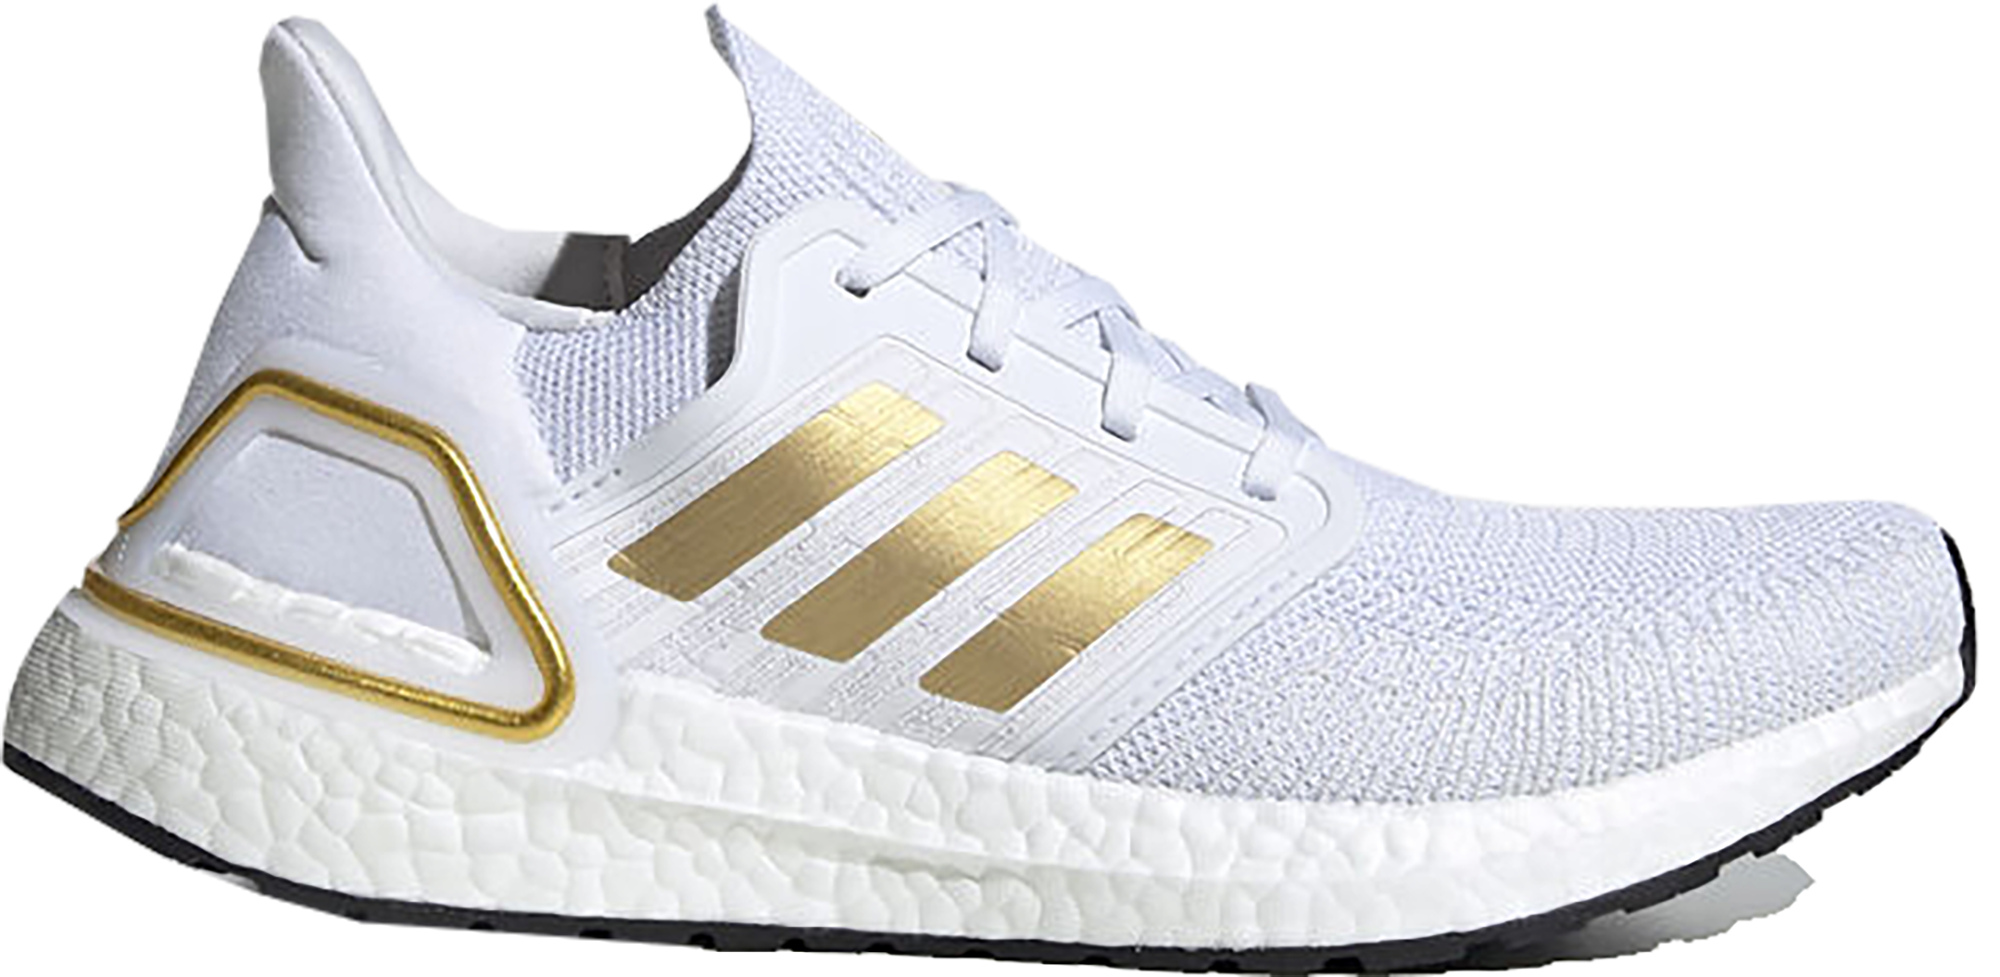 adidas Ultra Boost 20 Cloud White Gold